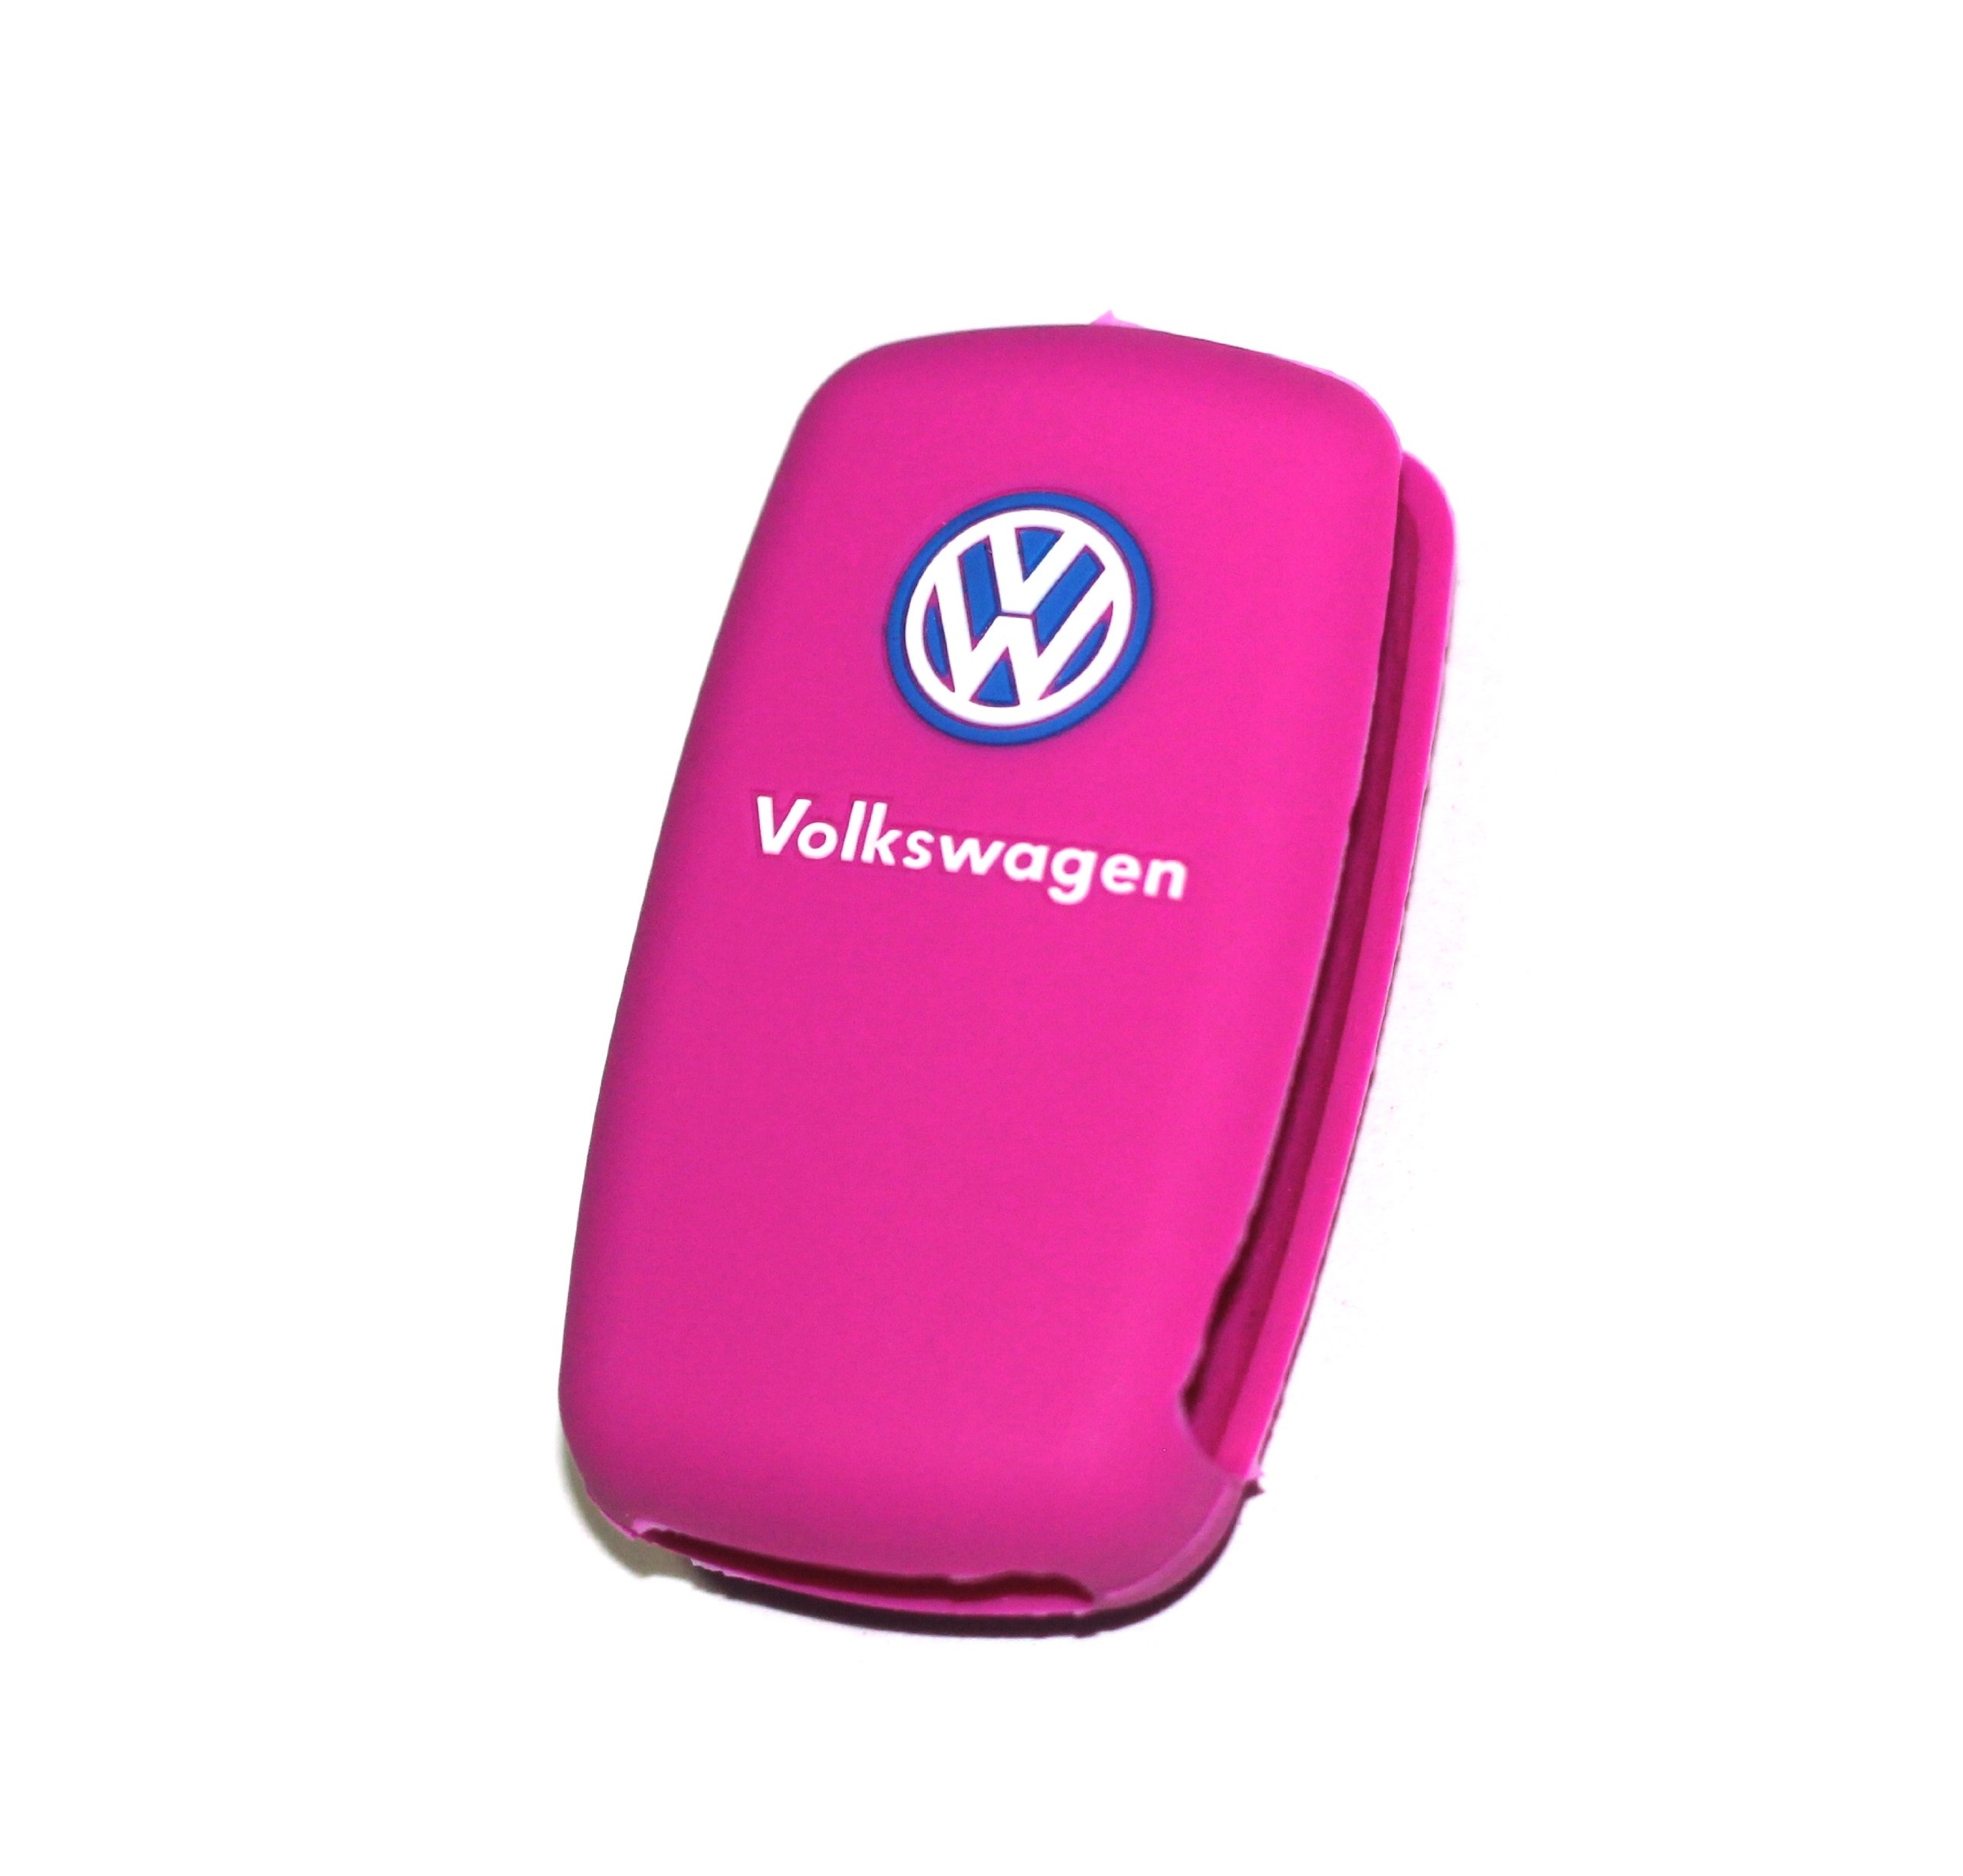 replacement extra slot parts bmw elec series remote image key techarticles pelican cover large htm